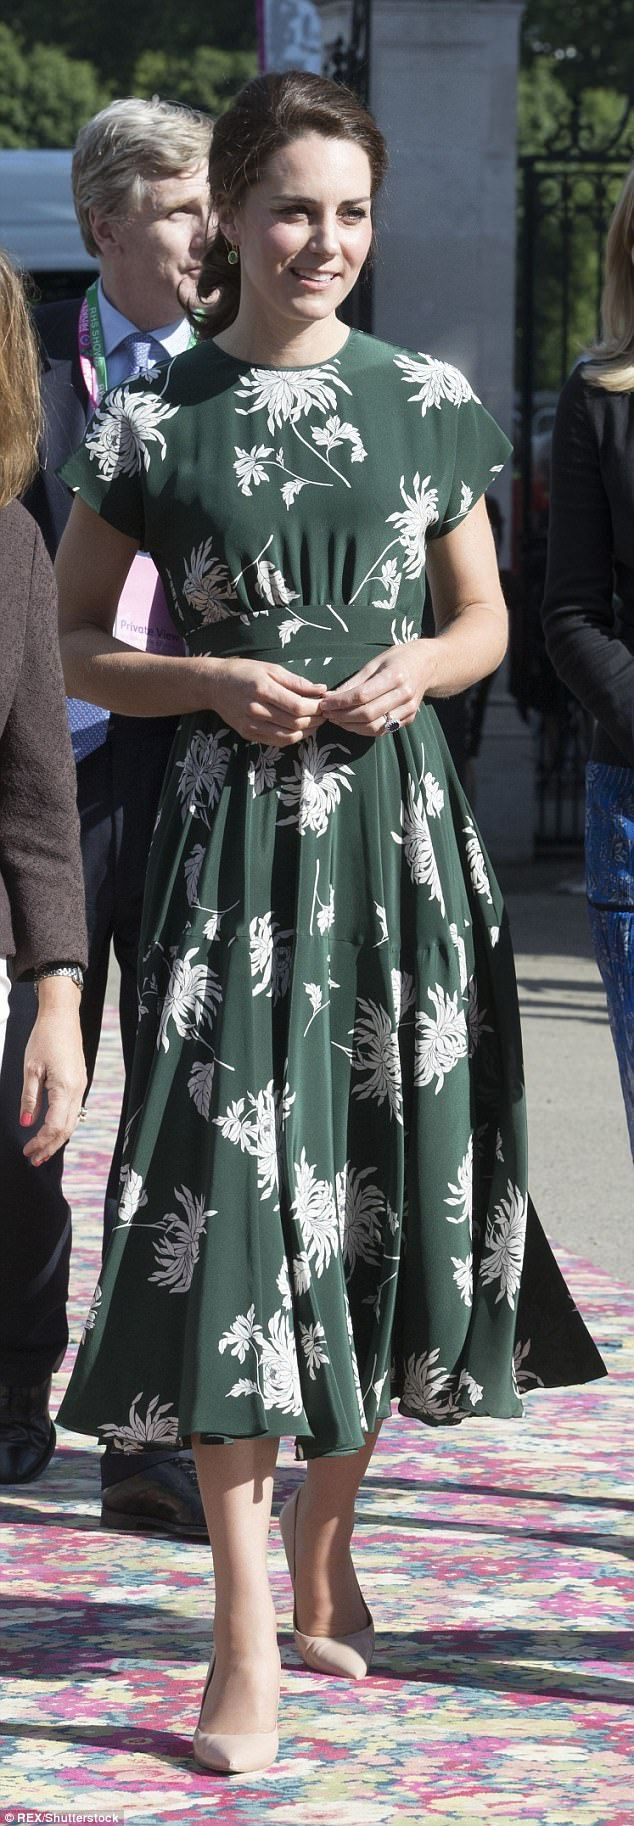 Floral fantasy: There was no mistaking the inspiration behind Kate's choice of outfit for ...